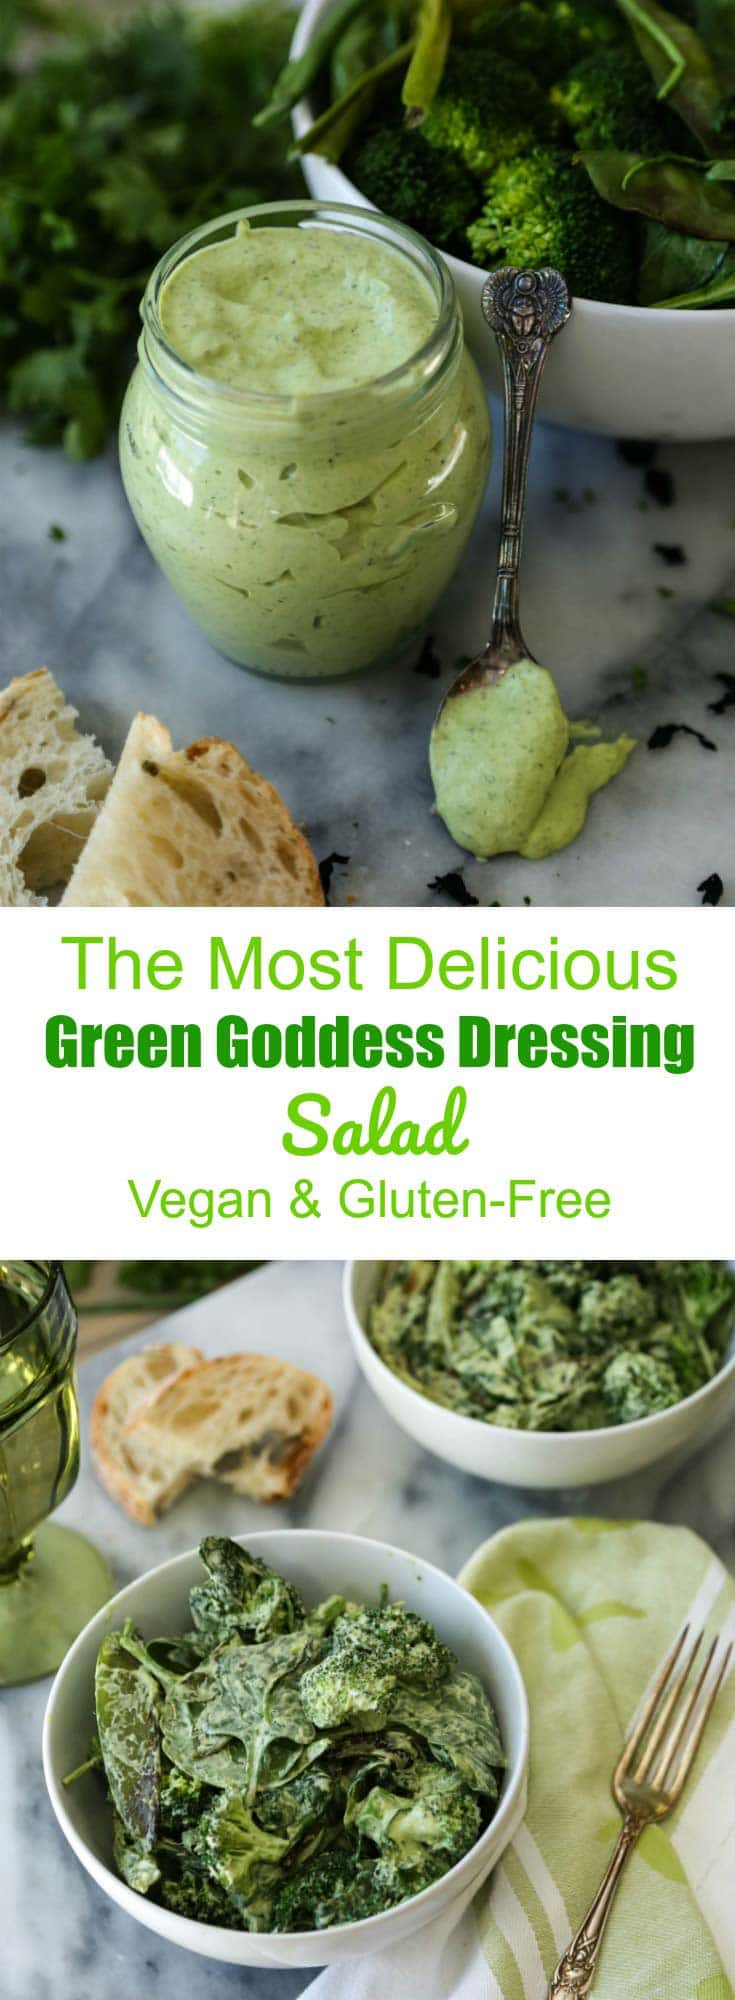 Pan roasted green vegetables with a bright and fresh vegan Green Goddess Dressing. A quick and easy meal!